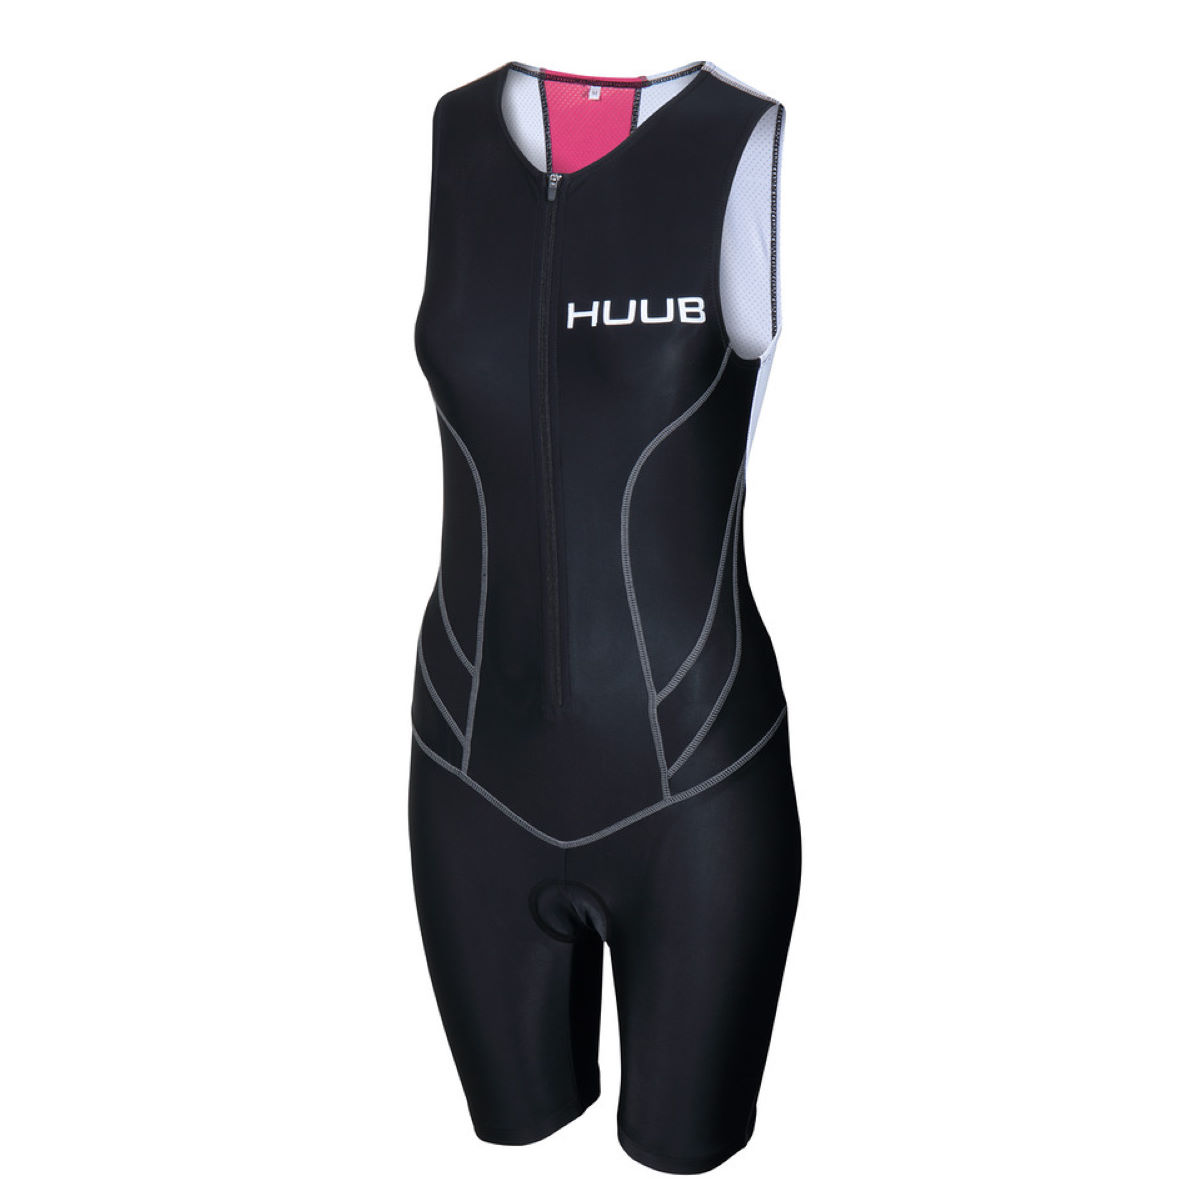 HUUB Women's Essential Tri Suit - Medium Black | Tri Suits